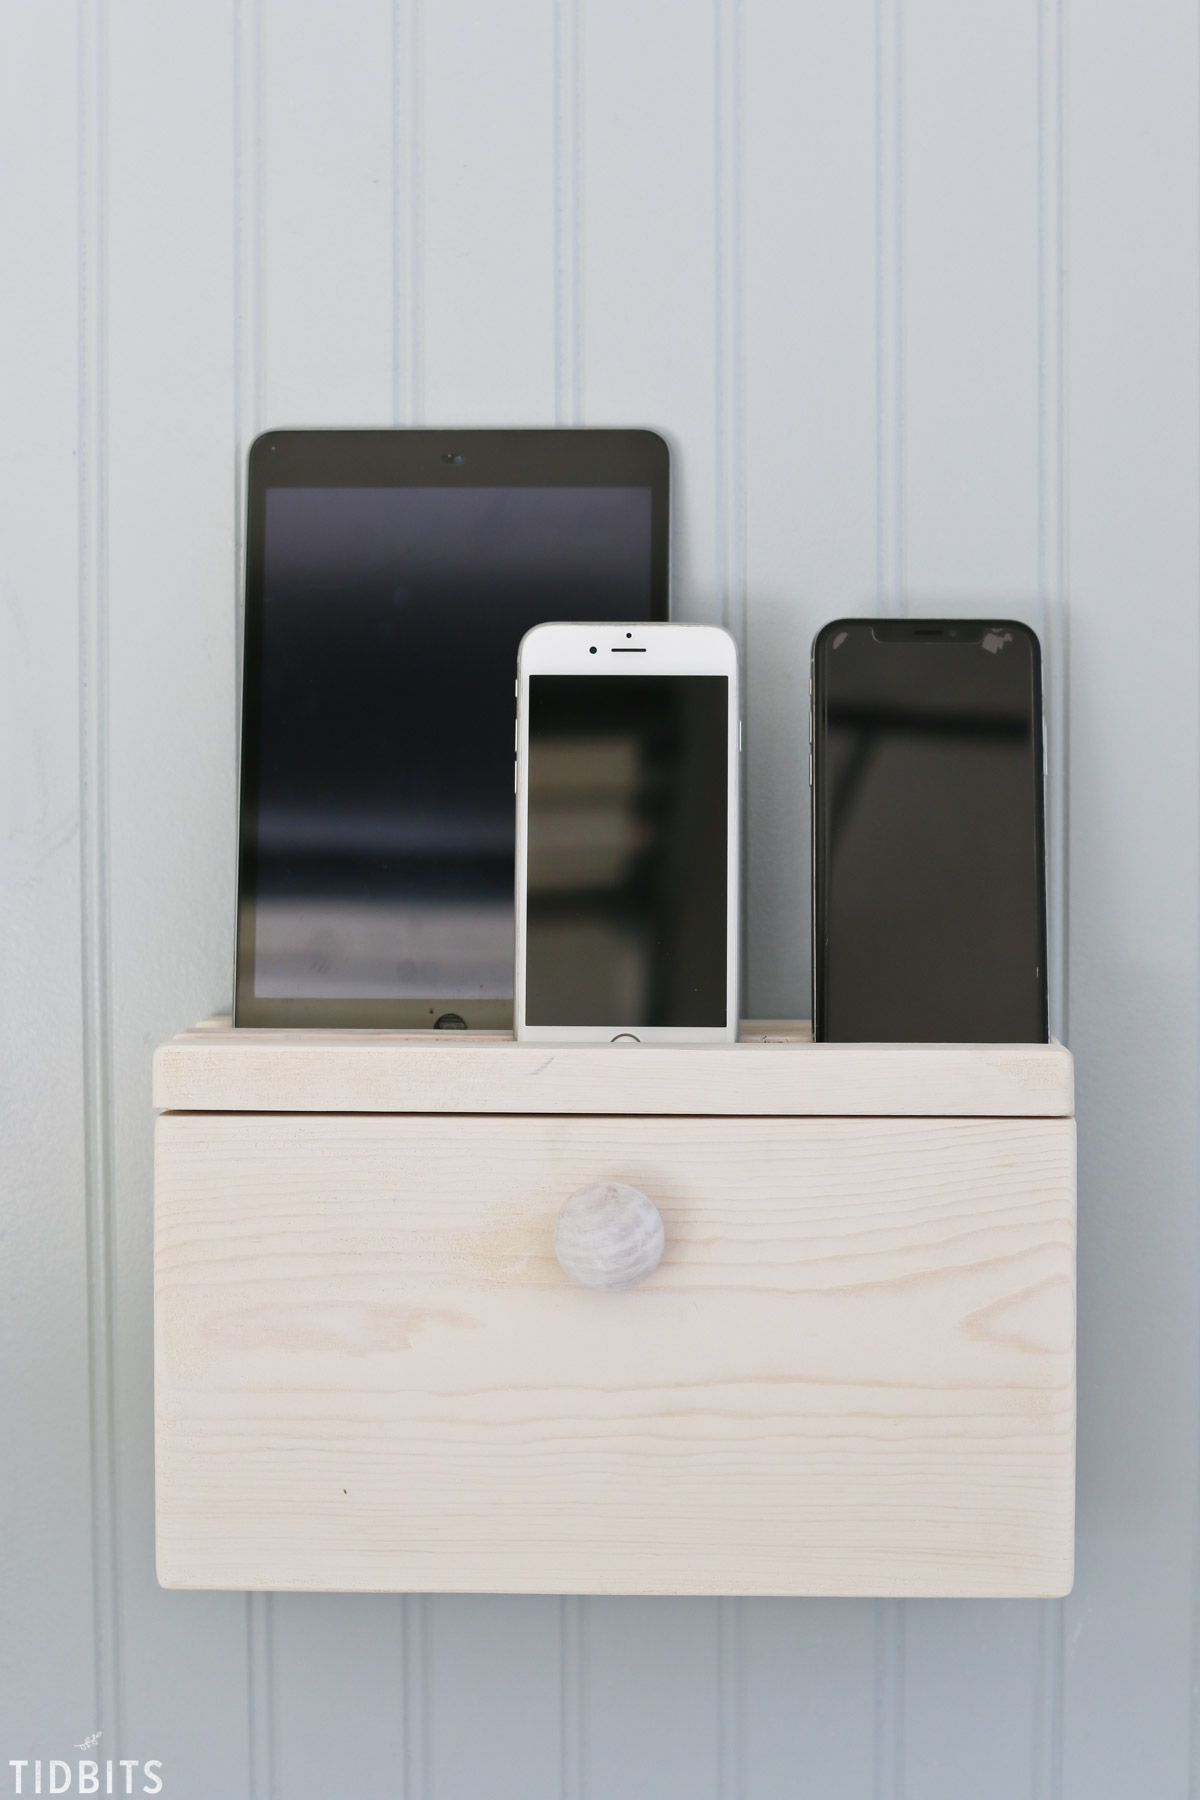 Diy Device Charging Station With Images Charging Station Wall Mounted Tv Easy Woodworking Projects